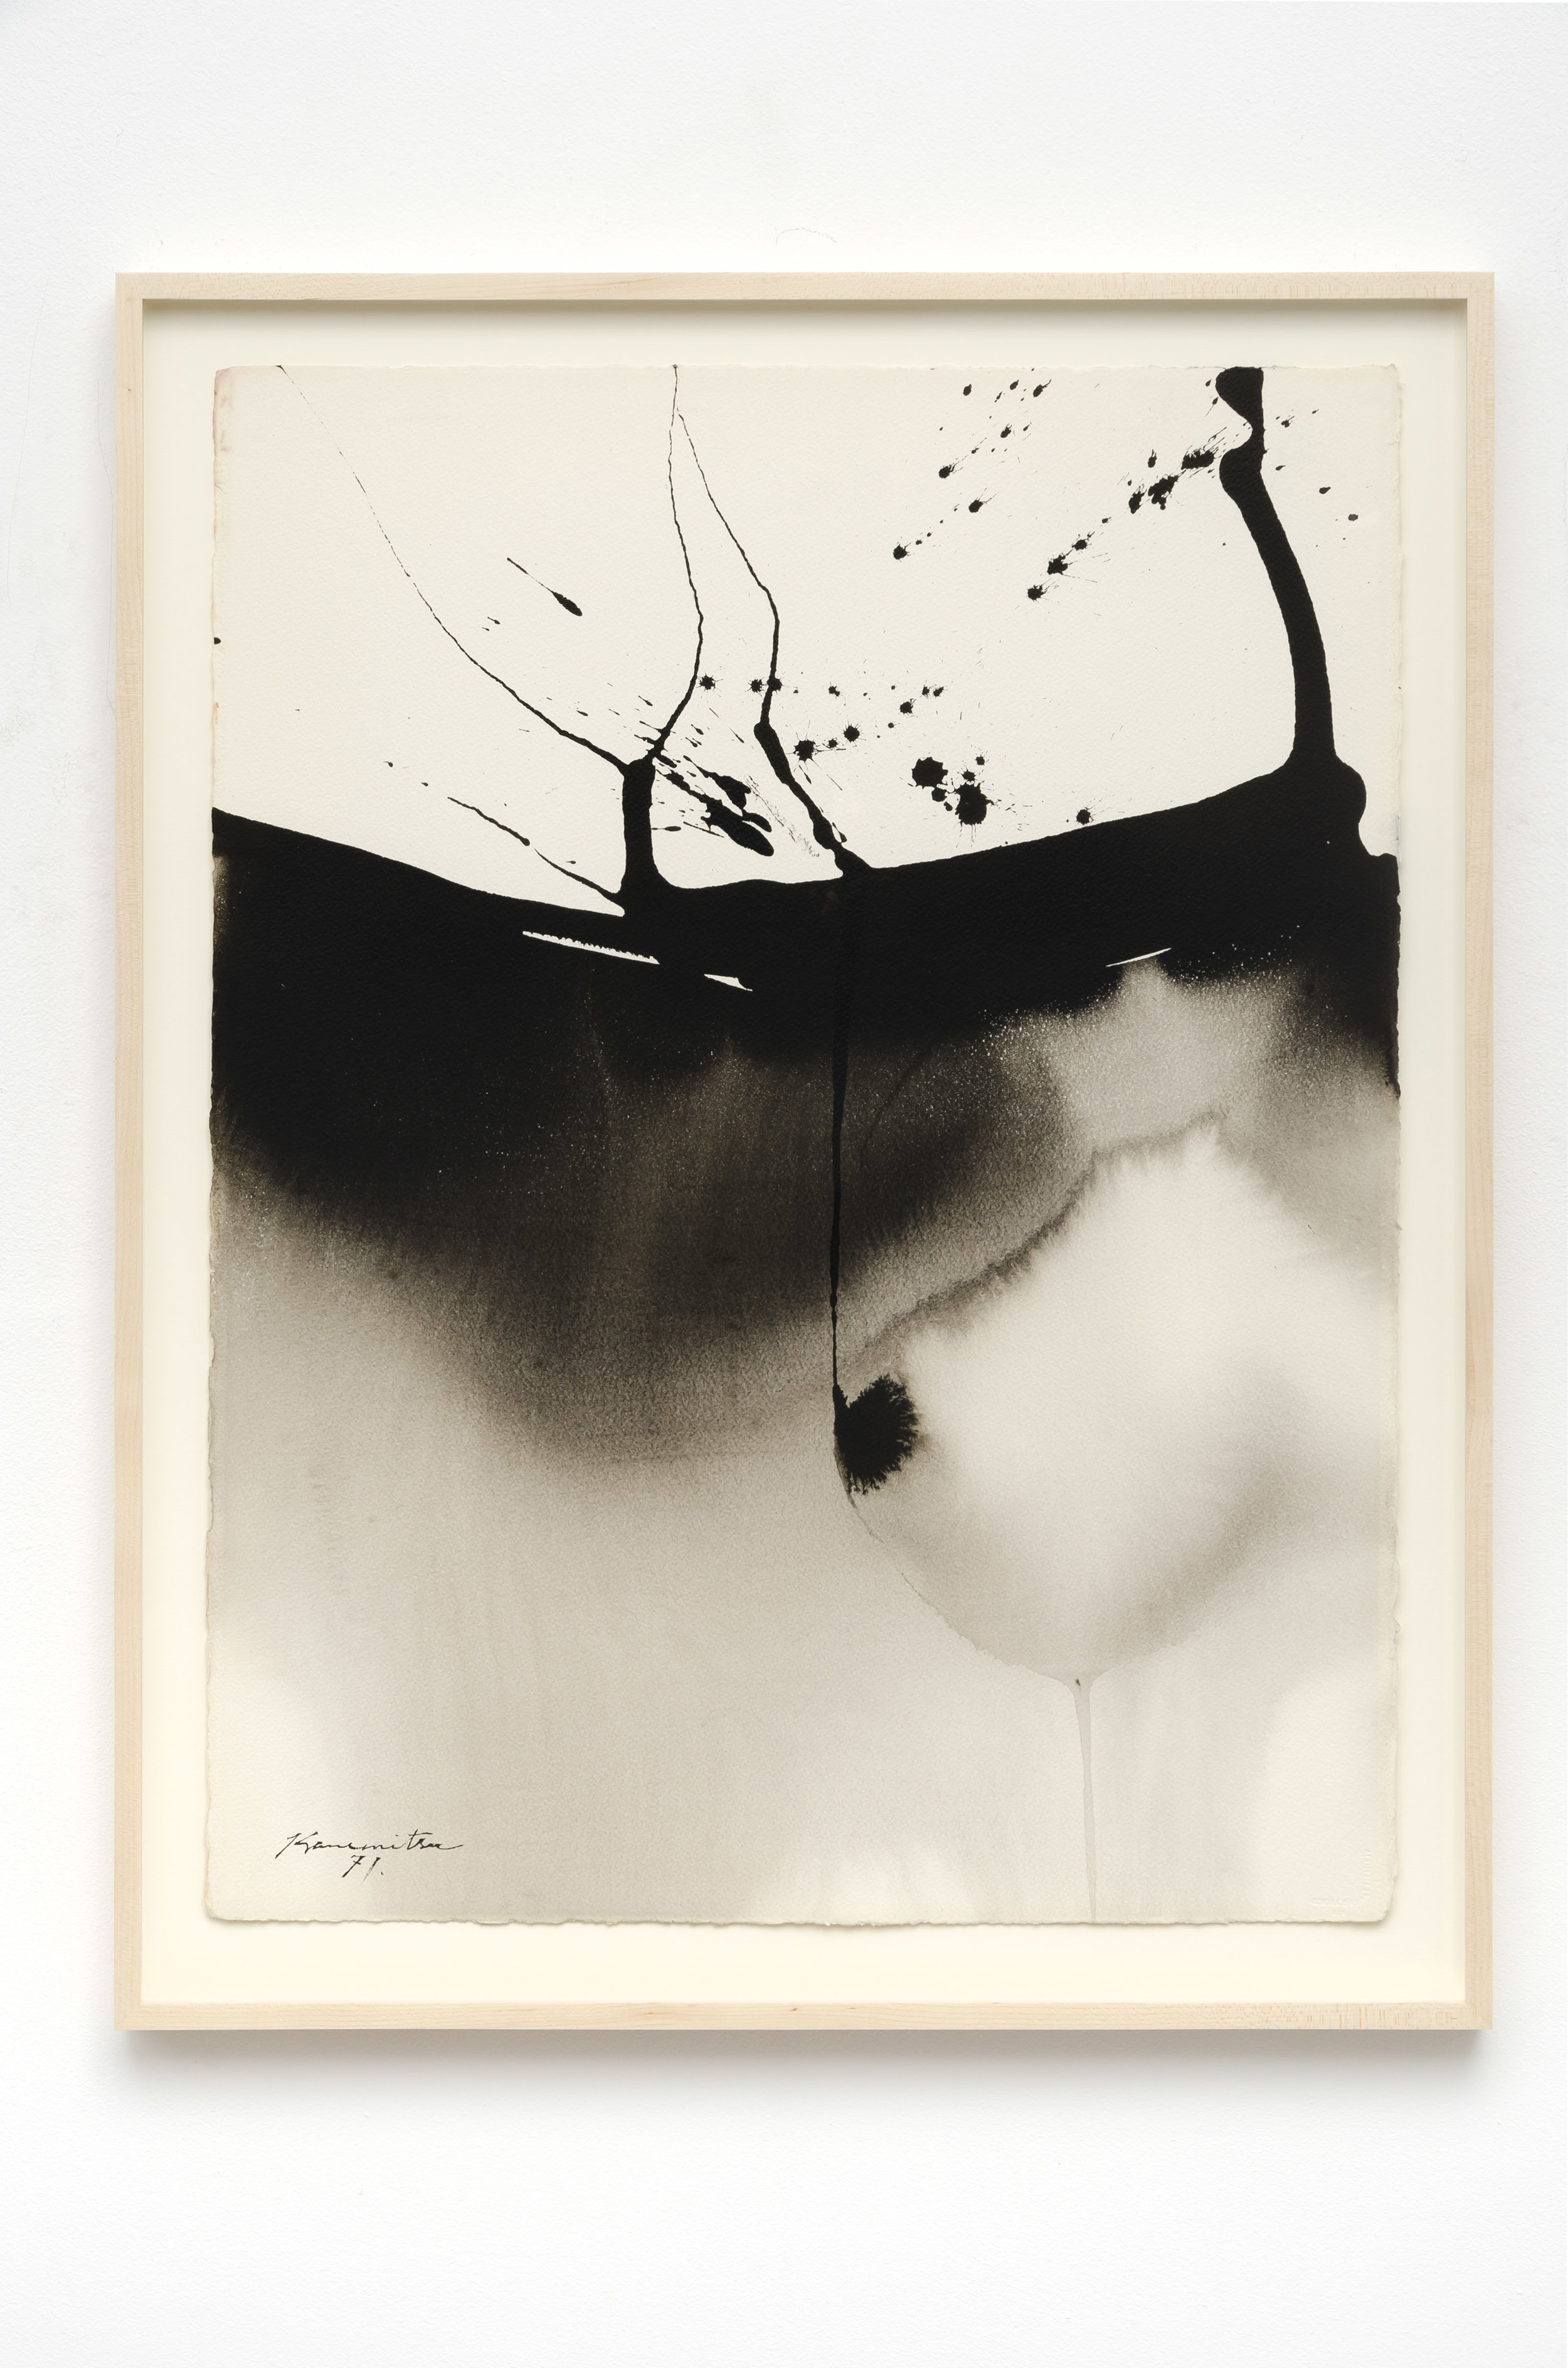 Untitled , 1971 sumi ink on paper 33.75 x 26.25 inches; 85.7 x 66.7 centimeters